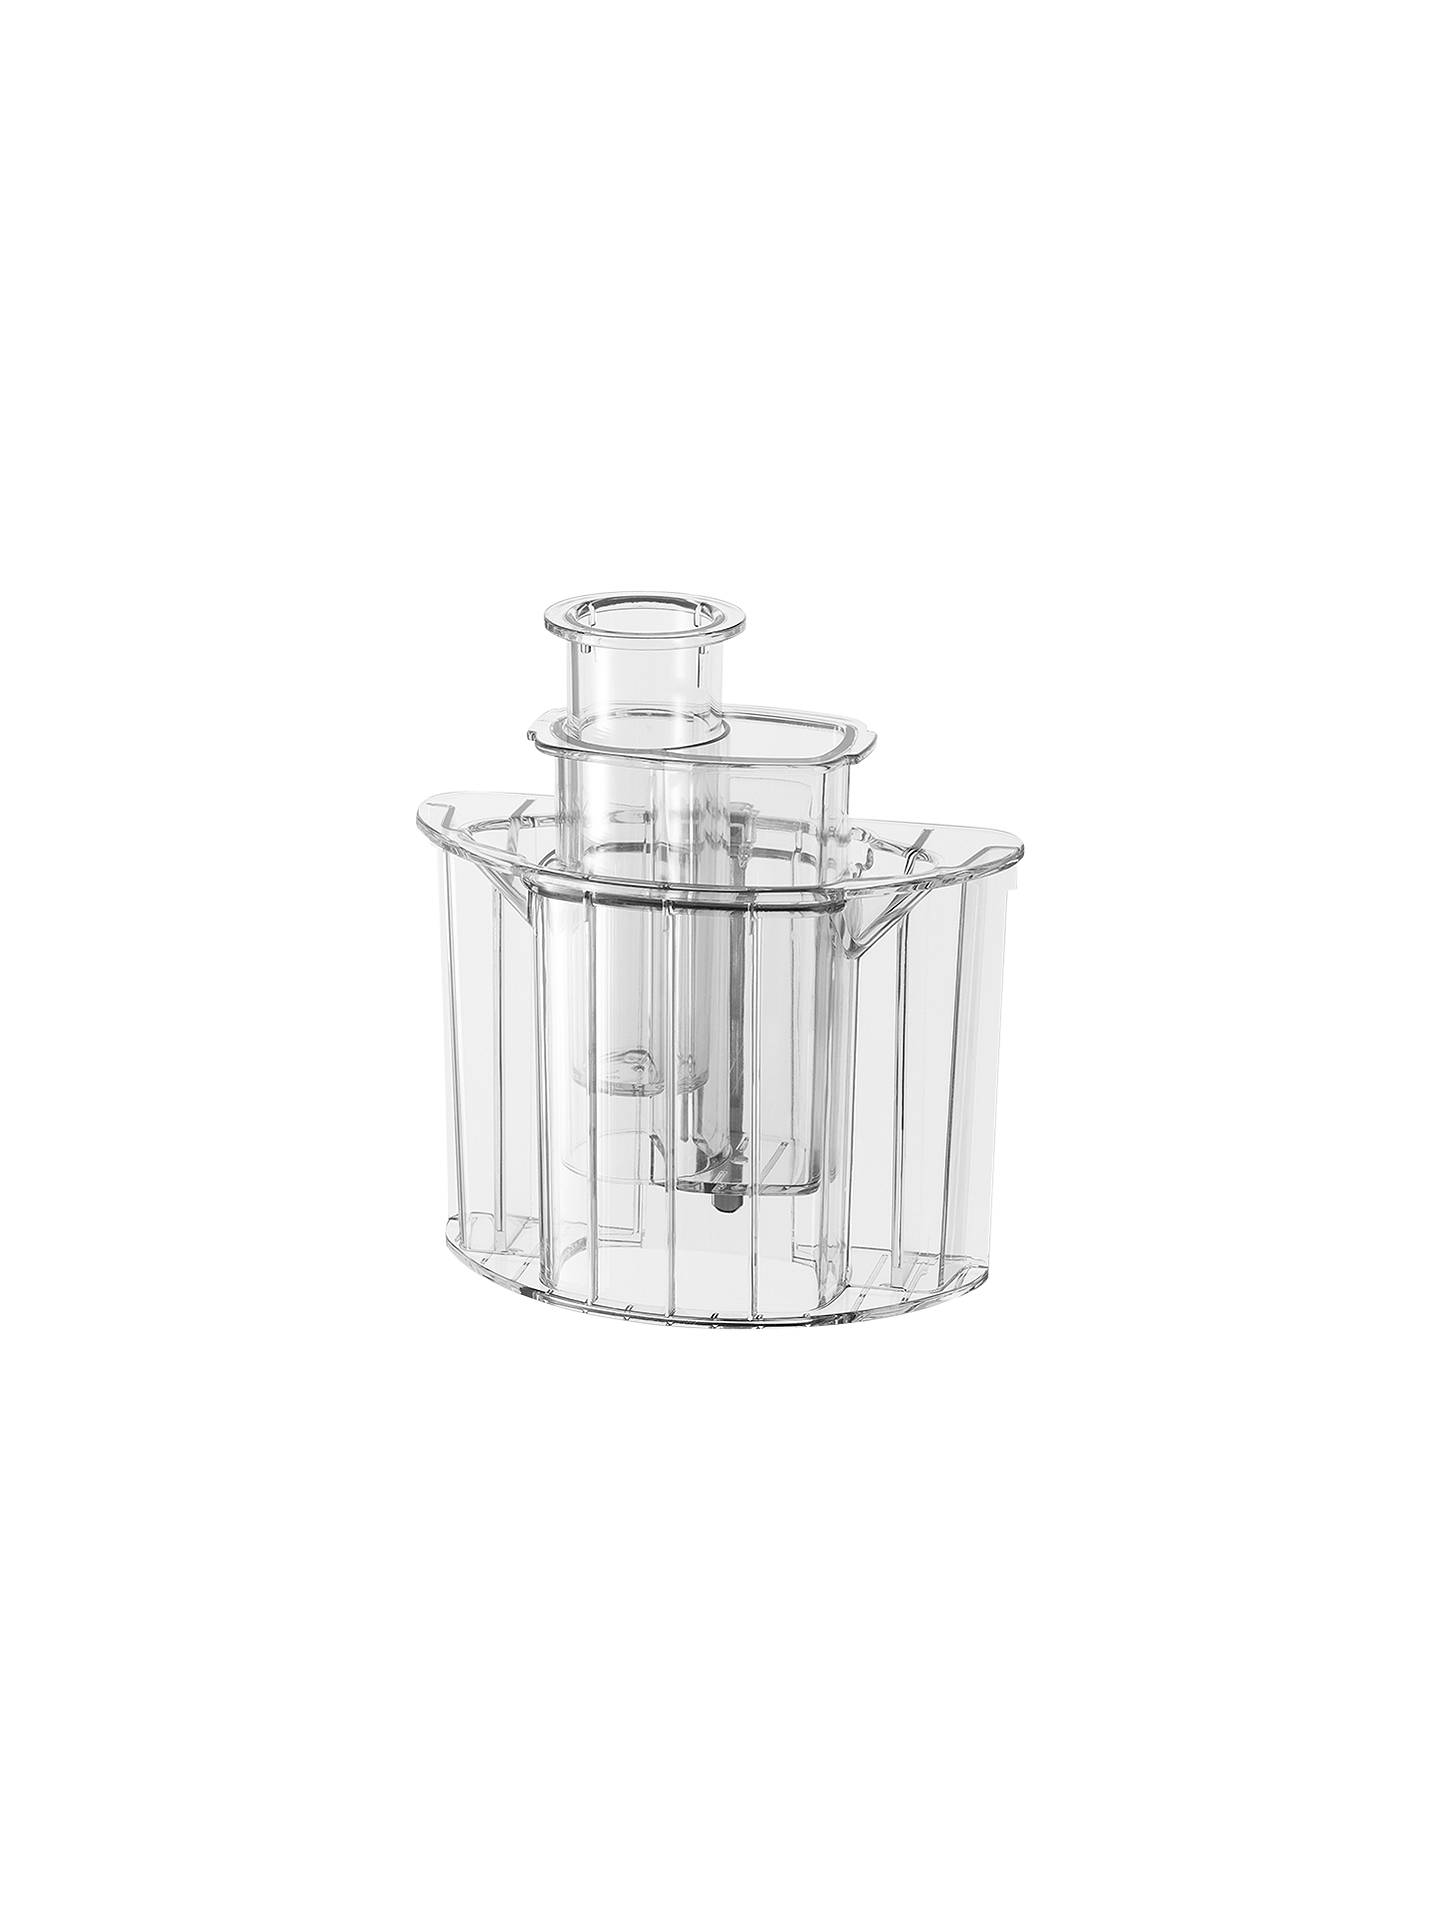 BuyKitchenAid 2.1 L Food Processor Online at johnlewis.com